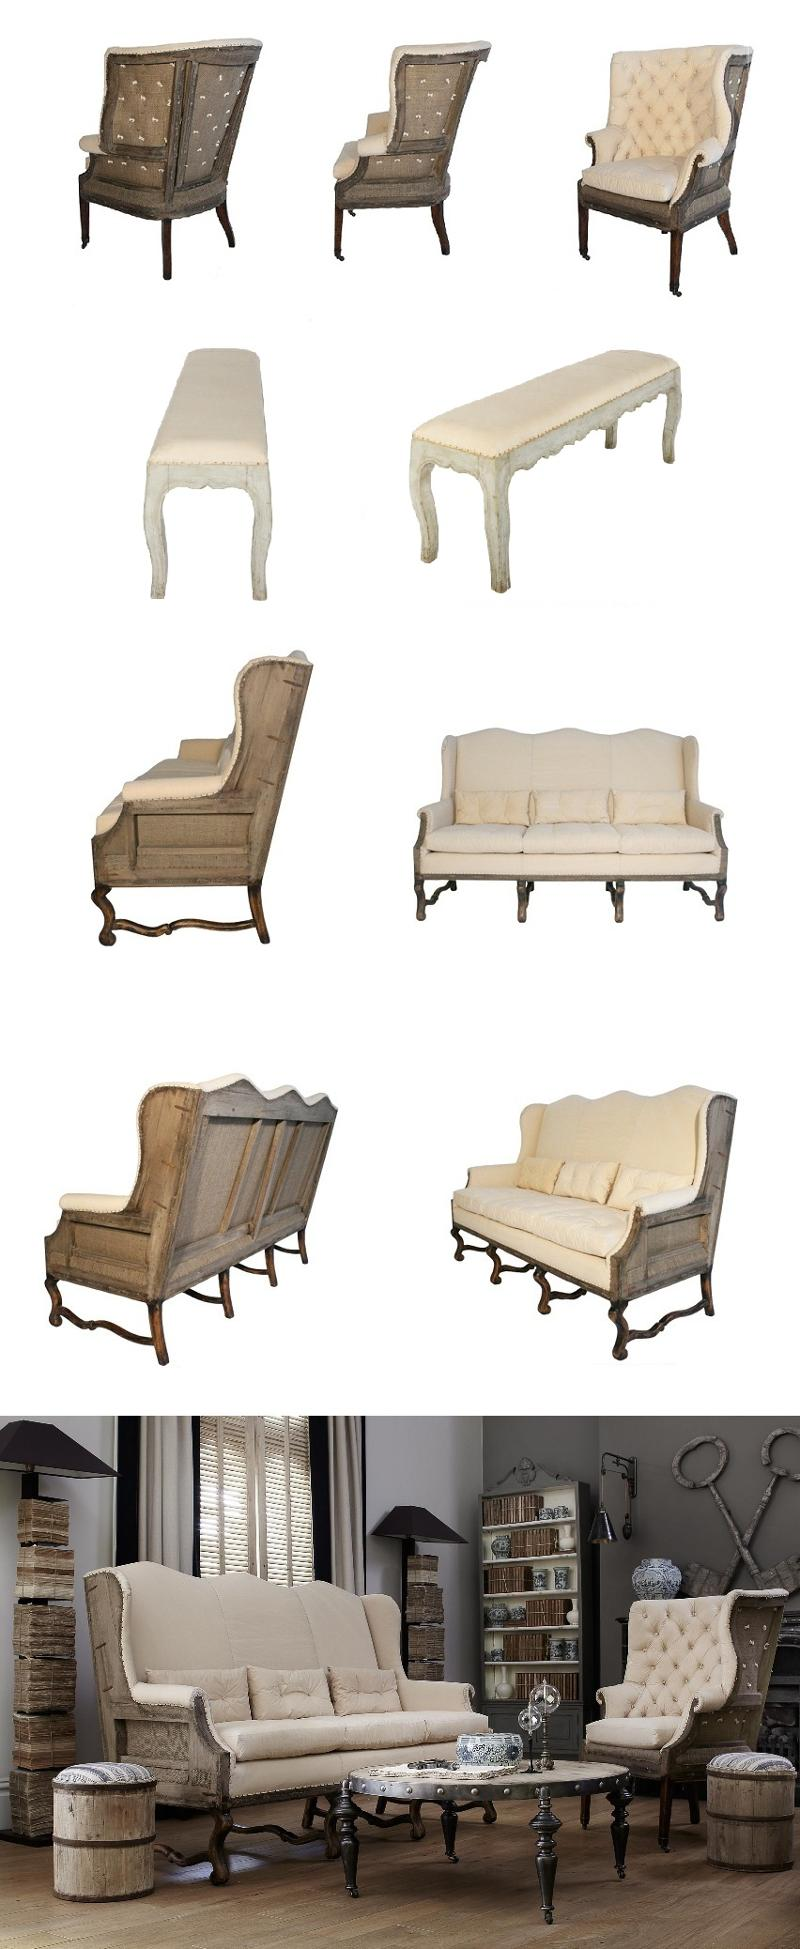 /images/country_%20trader_upholstered%20_furniture.jpg